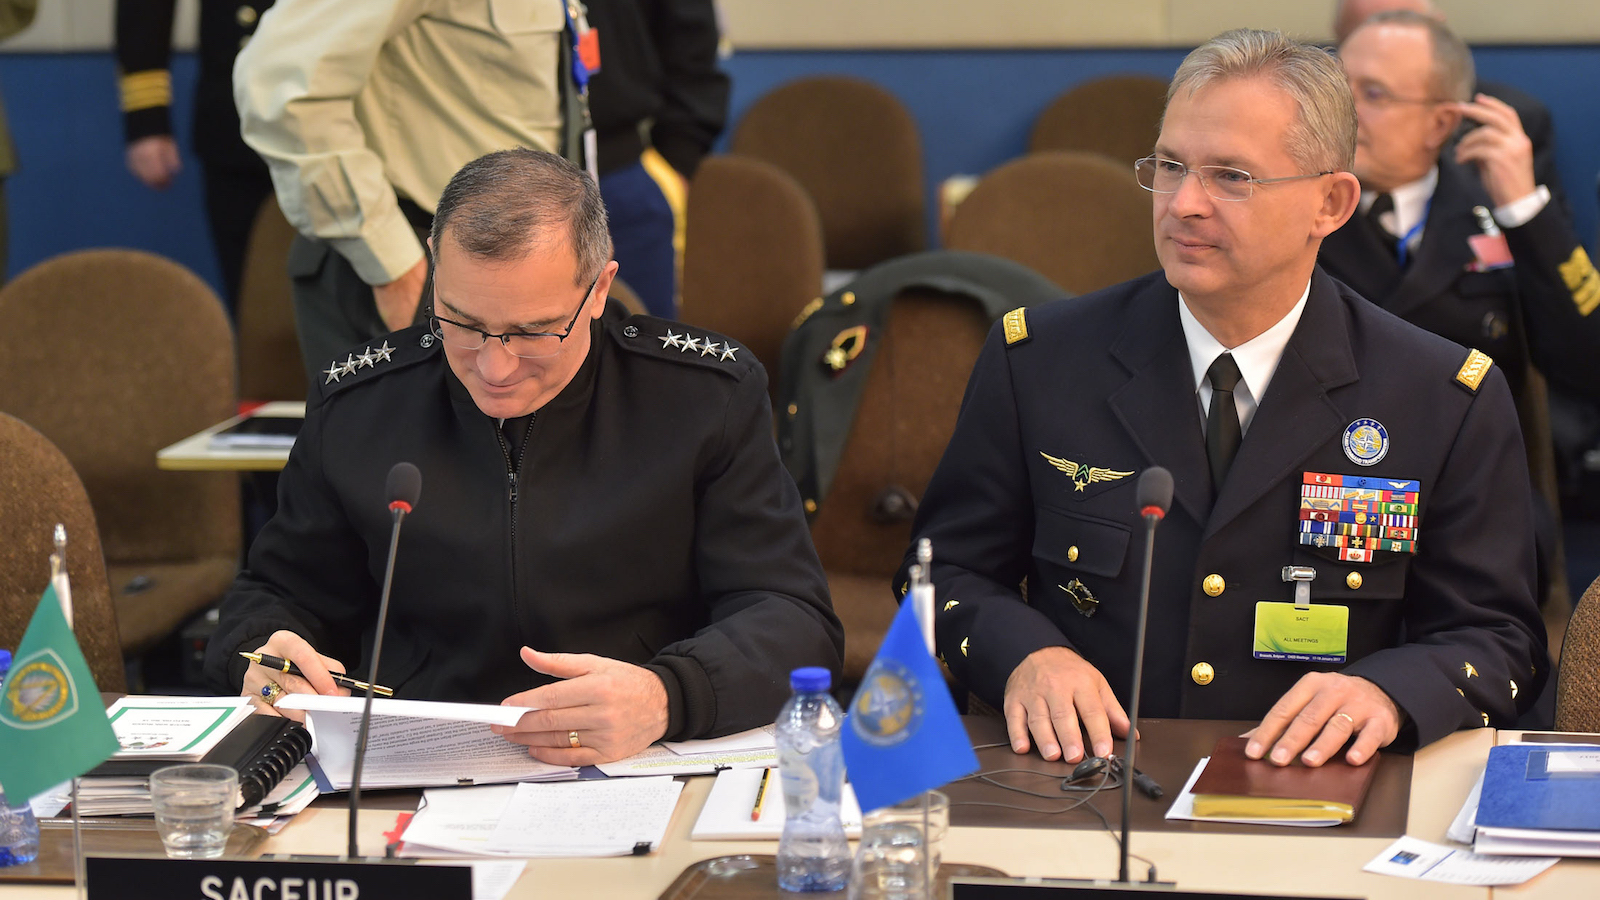 General Mercier at the NATO Chiefs of Defence Meeting